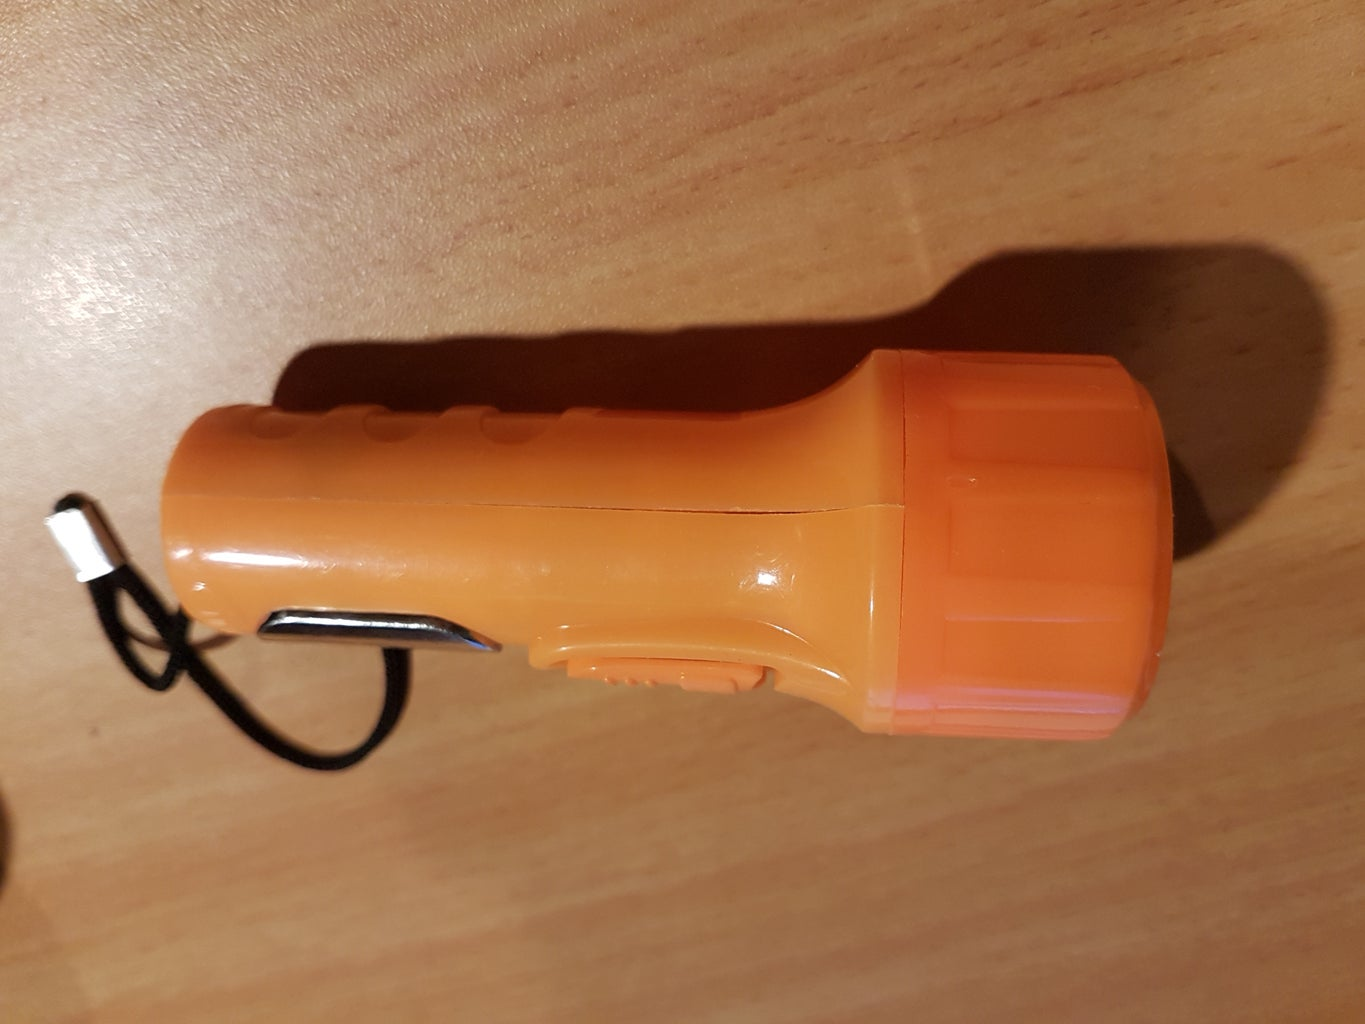 How to Convert Toy Flashlight to Rechargeable Flashlight